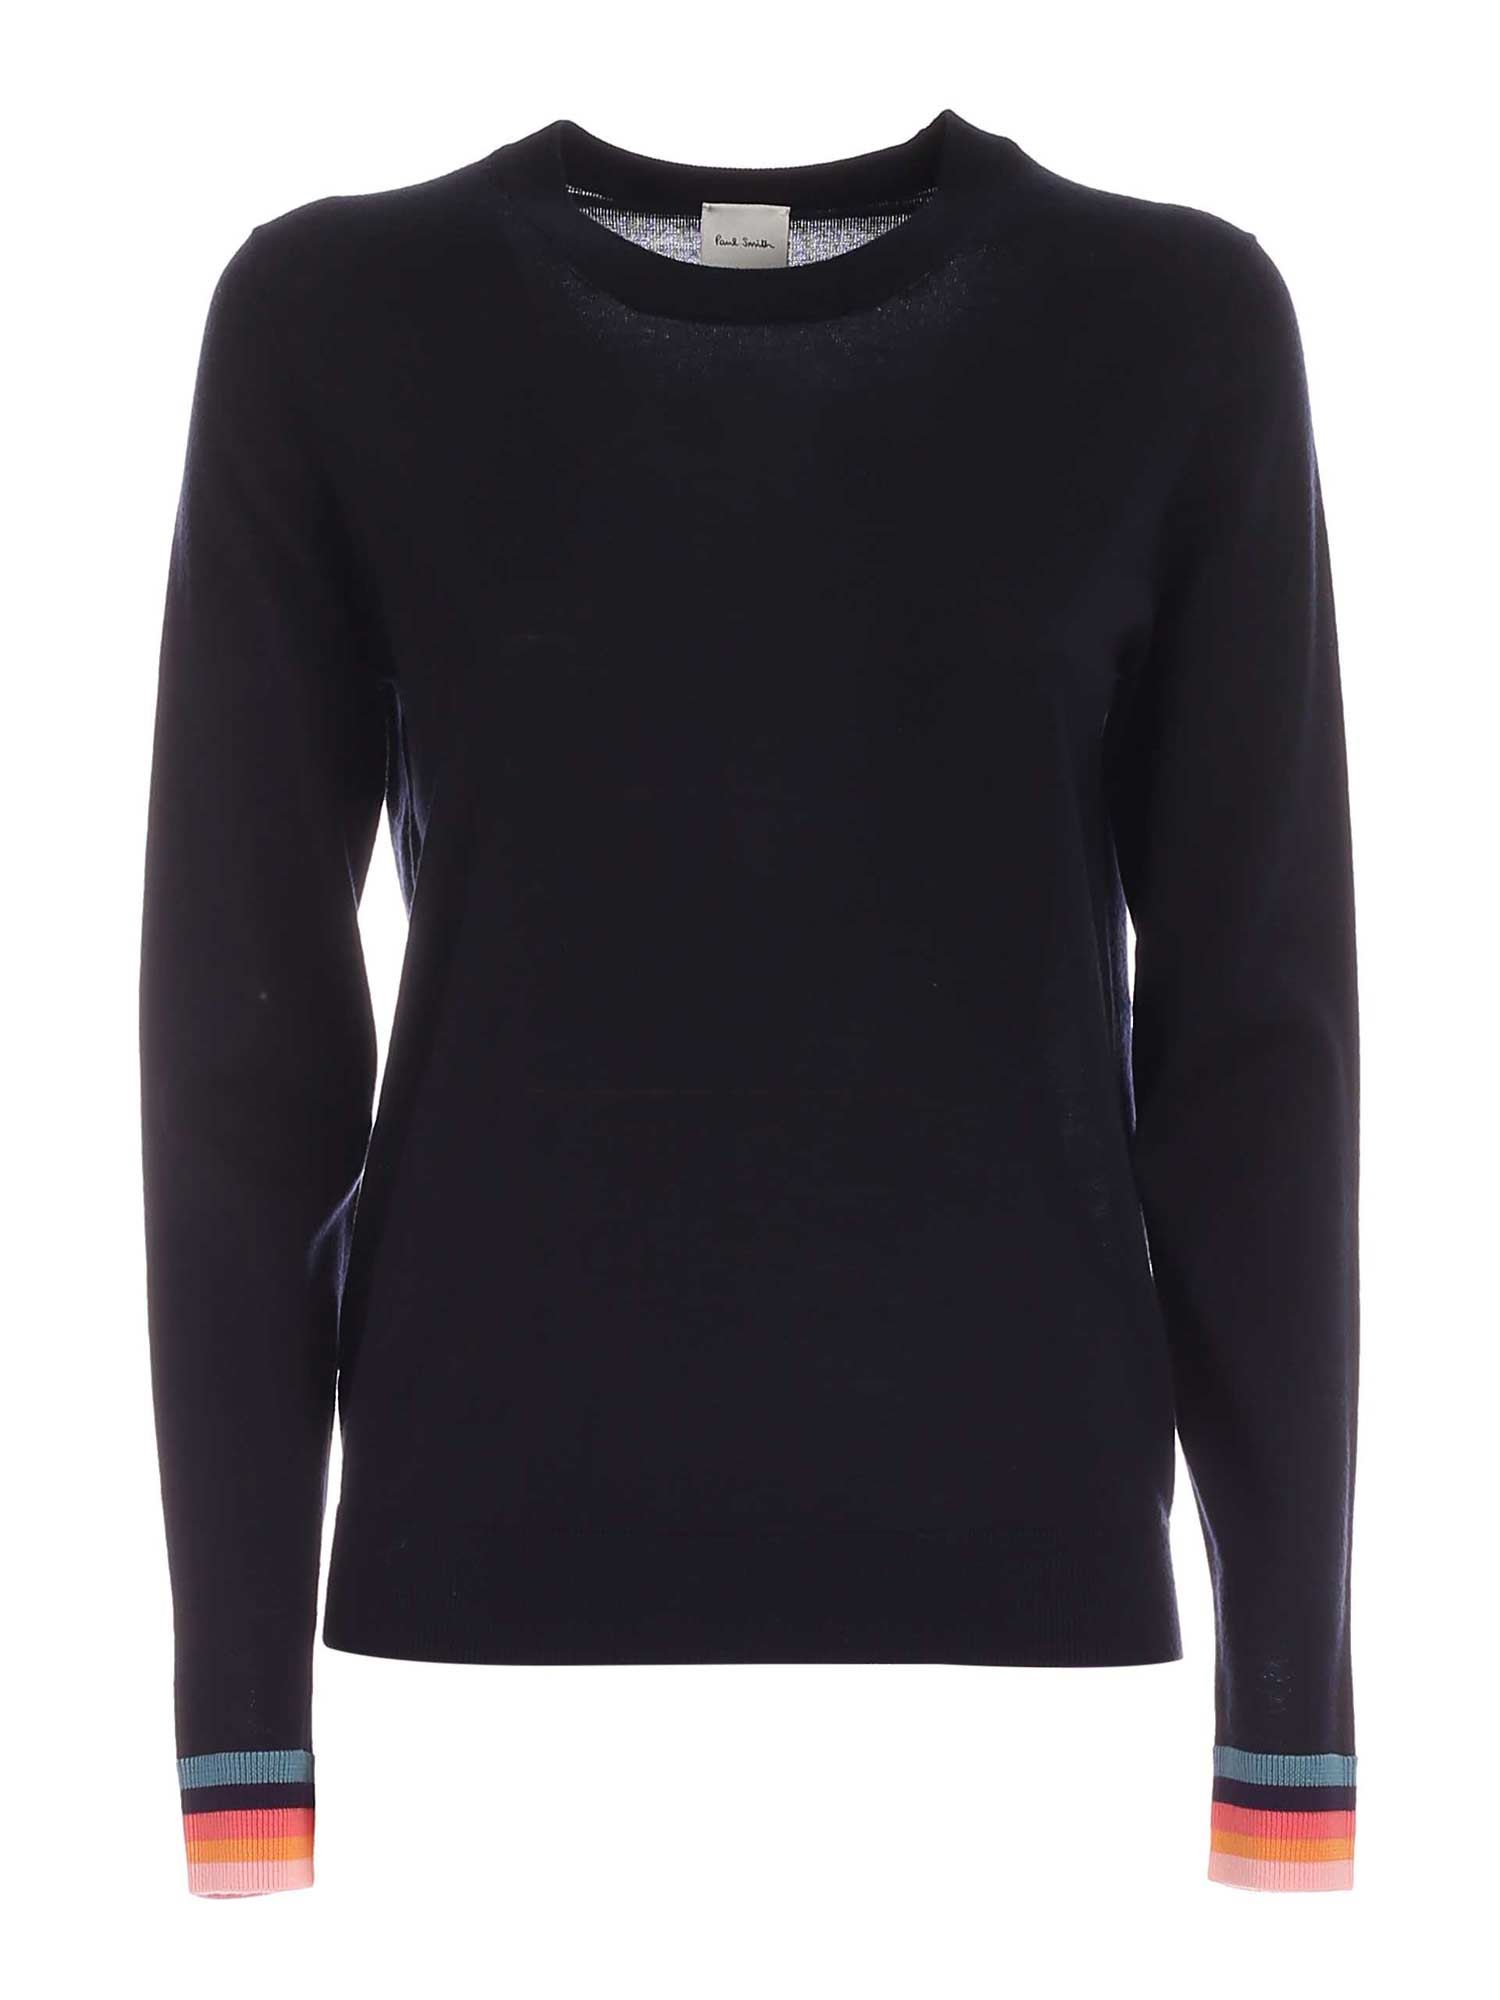 Paul Smith Clothing MULTICOLOR EDGES PULLOVER IN DARK BLUE